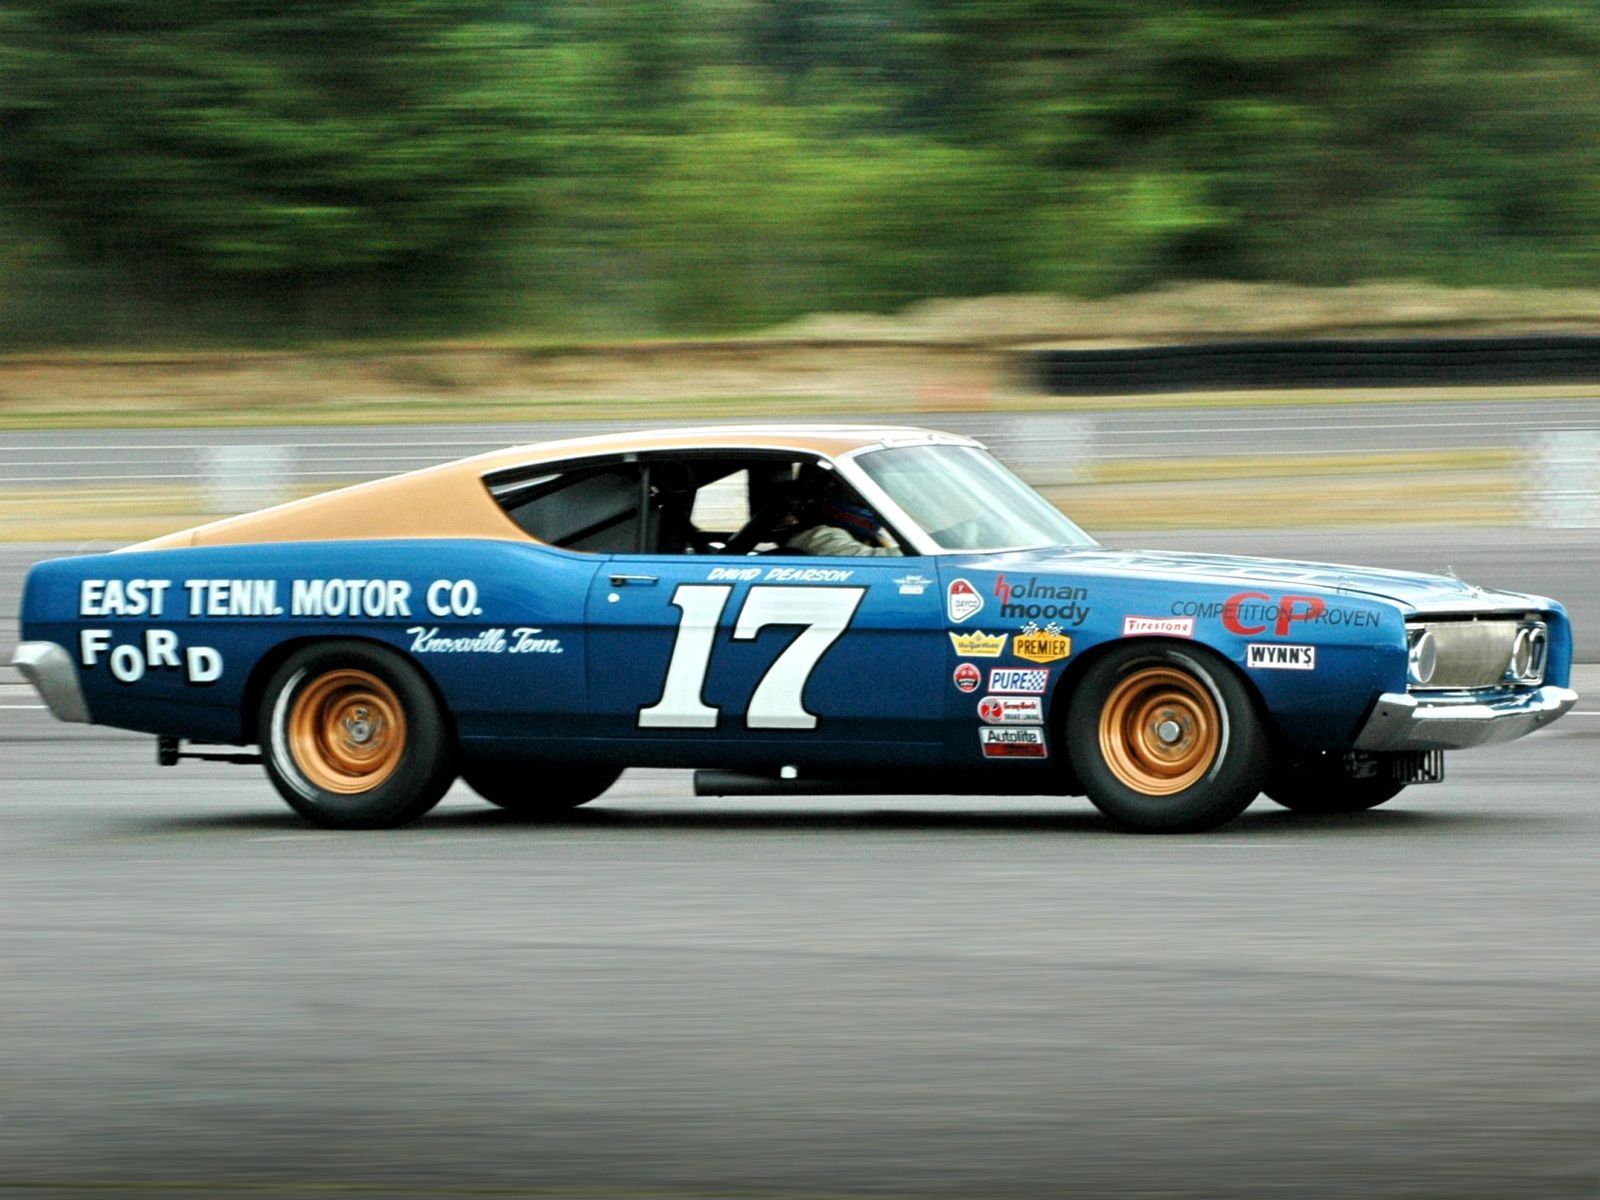 1968 Ford Gran Torino With Images Nascar Race Cars Racing Nascar Cars